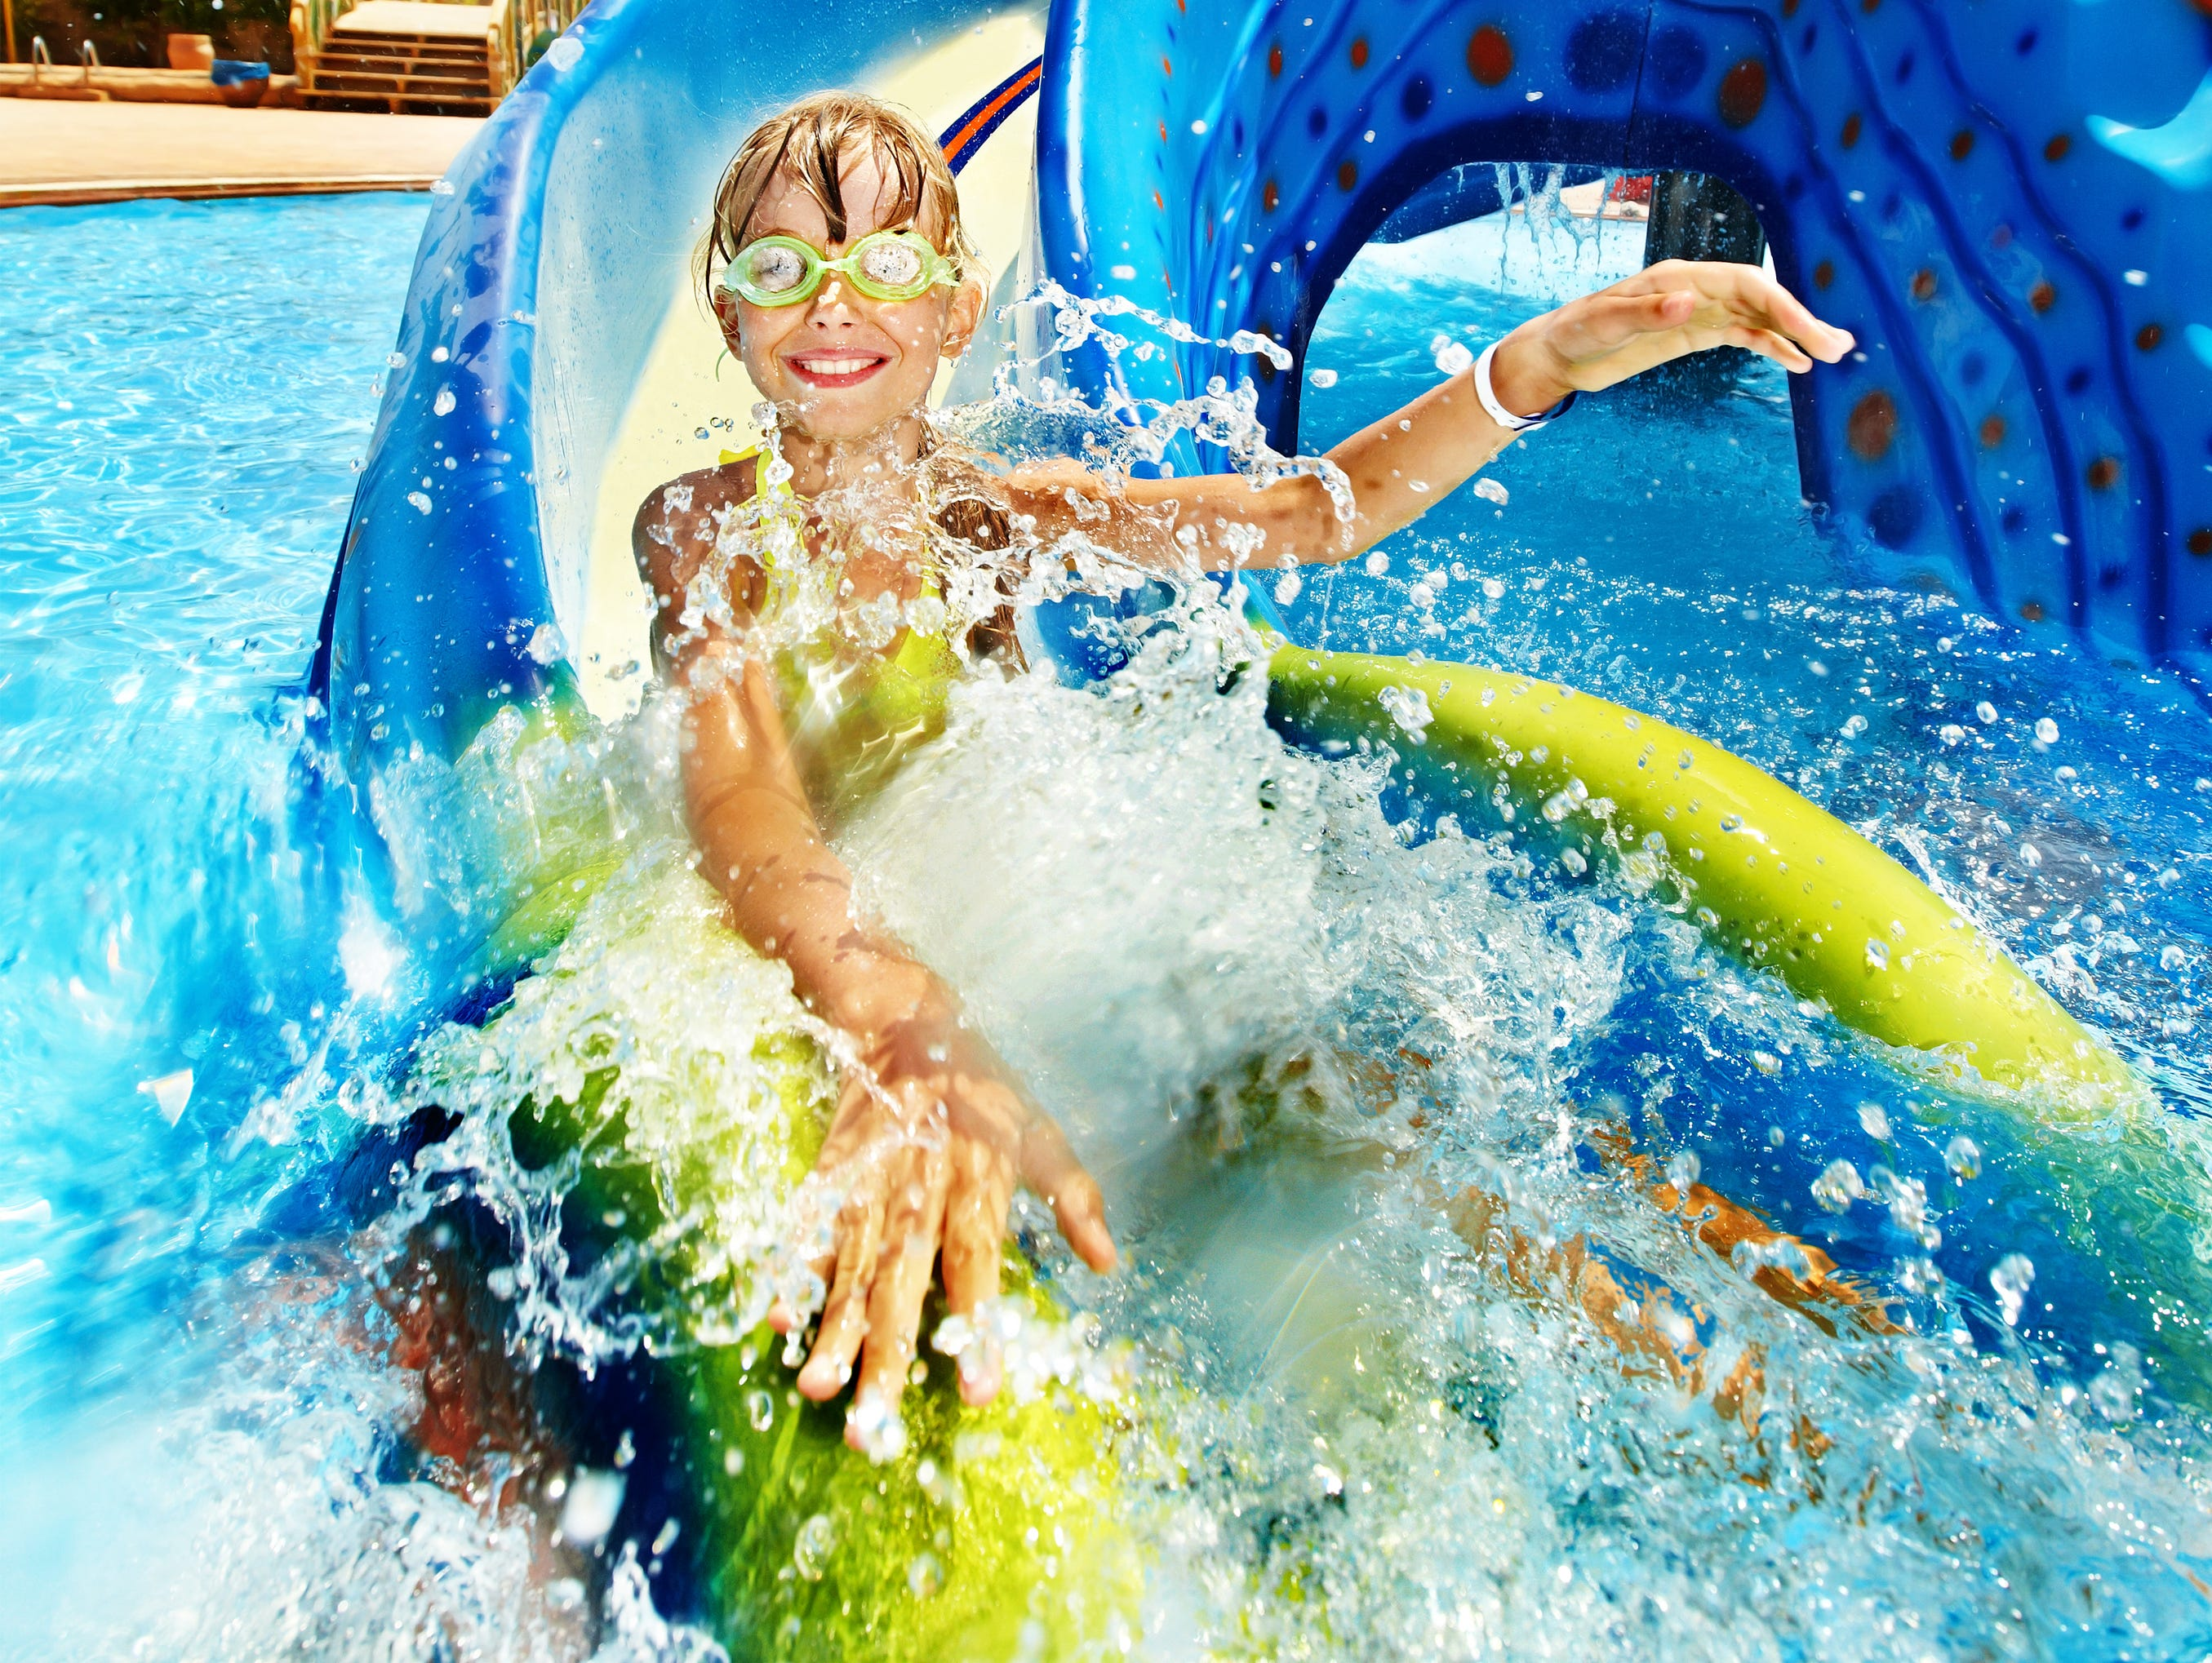 Save over 35% at Aquatica, Seaworld's water park and other parks nationwide.